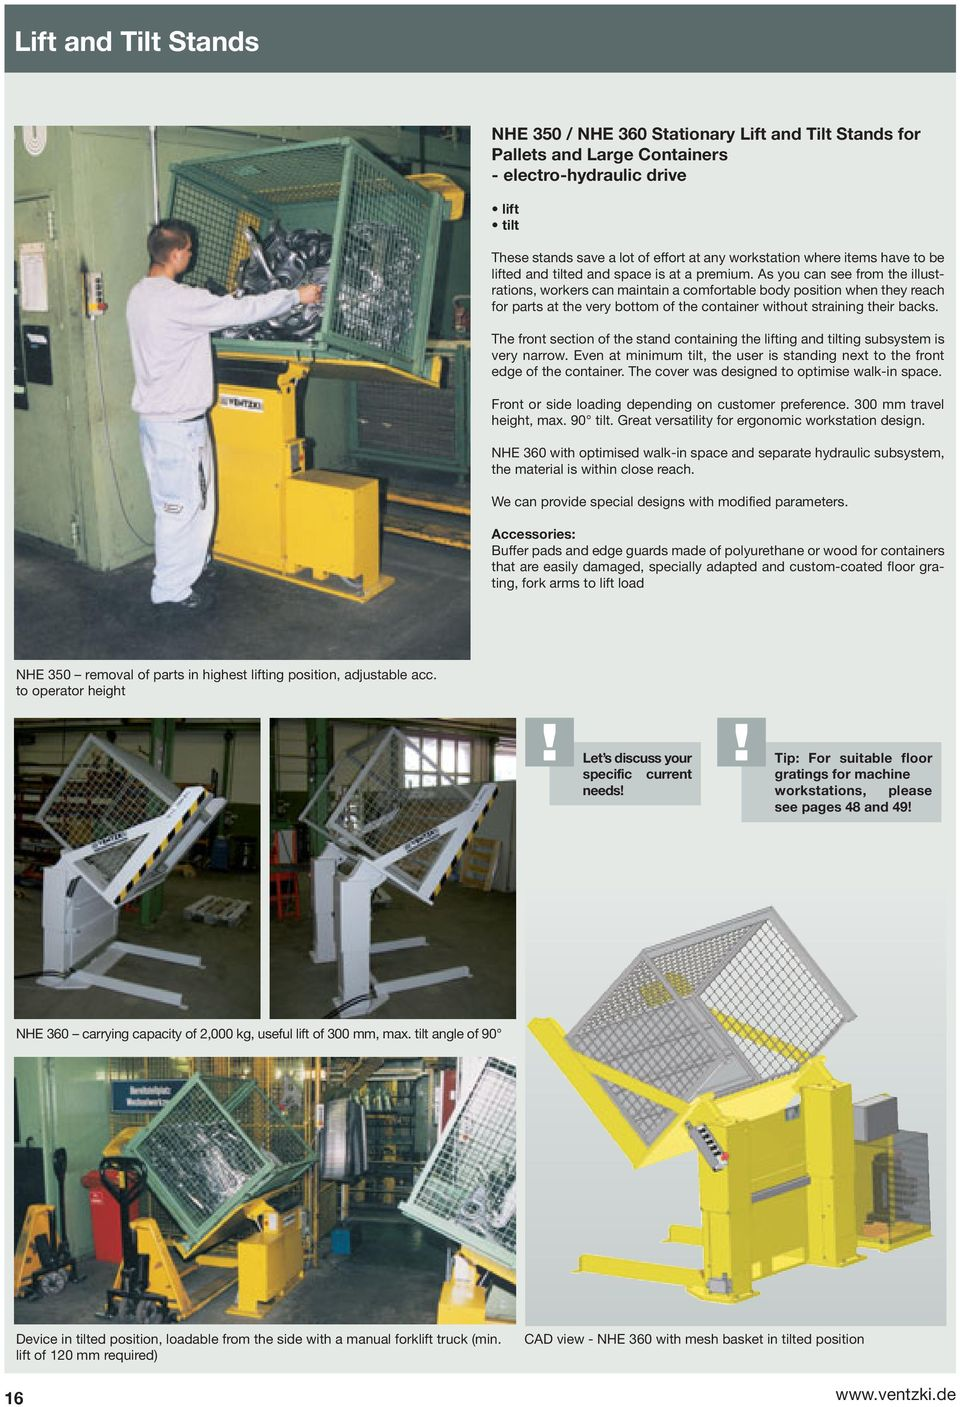 Handling Systems Your Partner For Efficiency And Ergonomics Pdf Spannfixcircuitboardholder As You Can See From The Illustrations Workers Maintain A Comfortable Body Position When